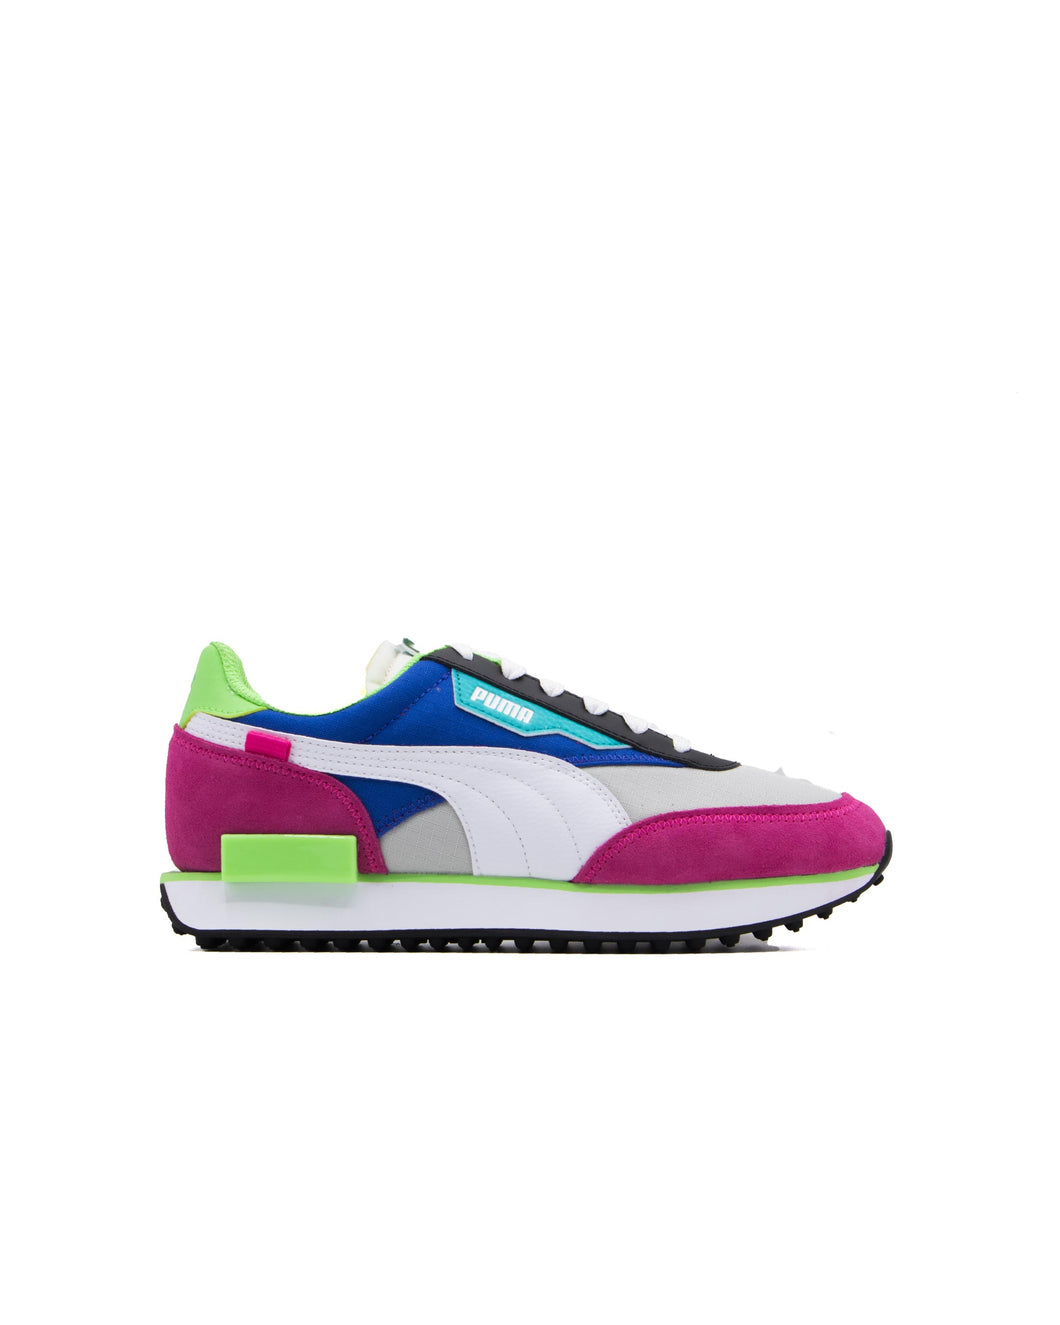 Puma Future Rider Play On Glowing Pink-Lapis-Viri-Green